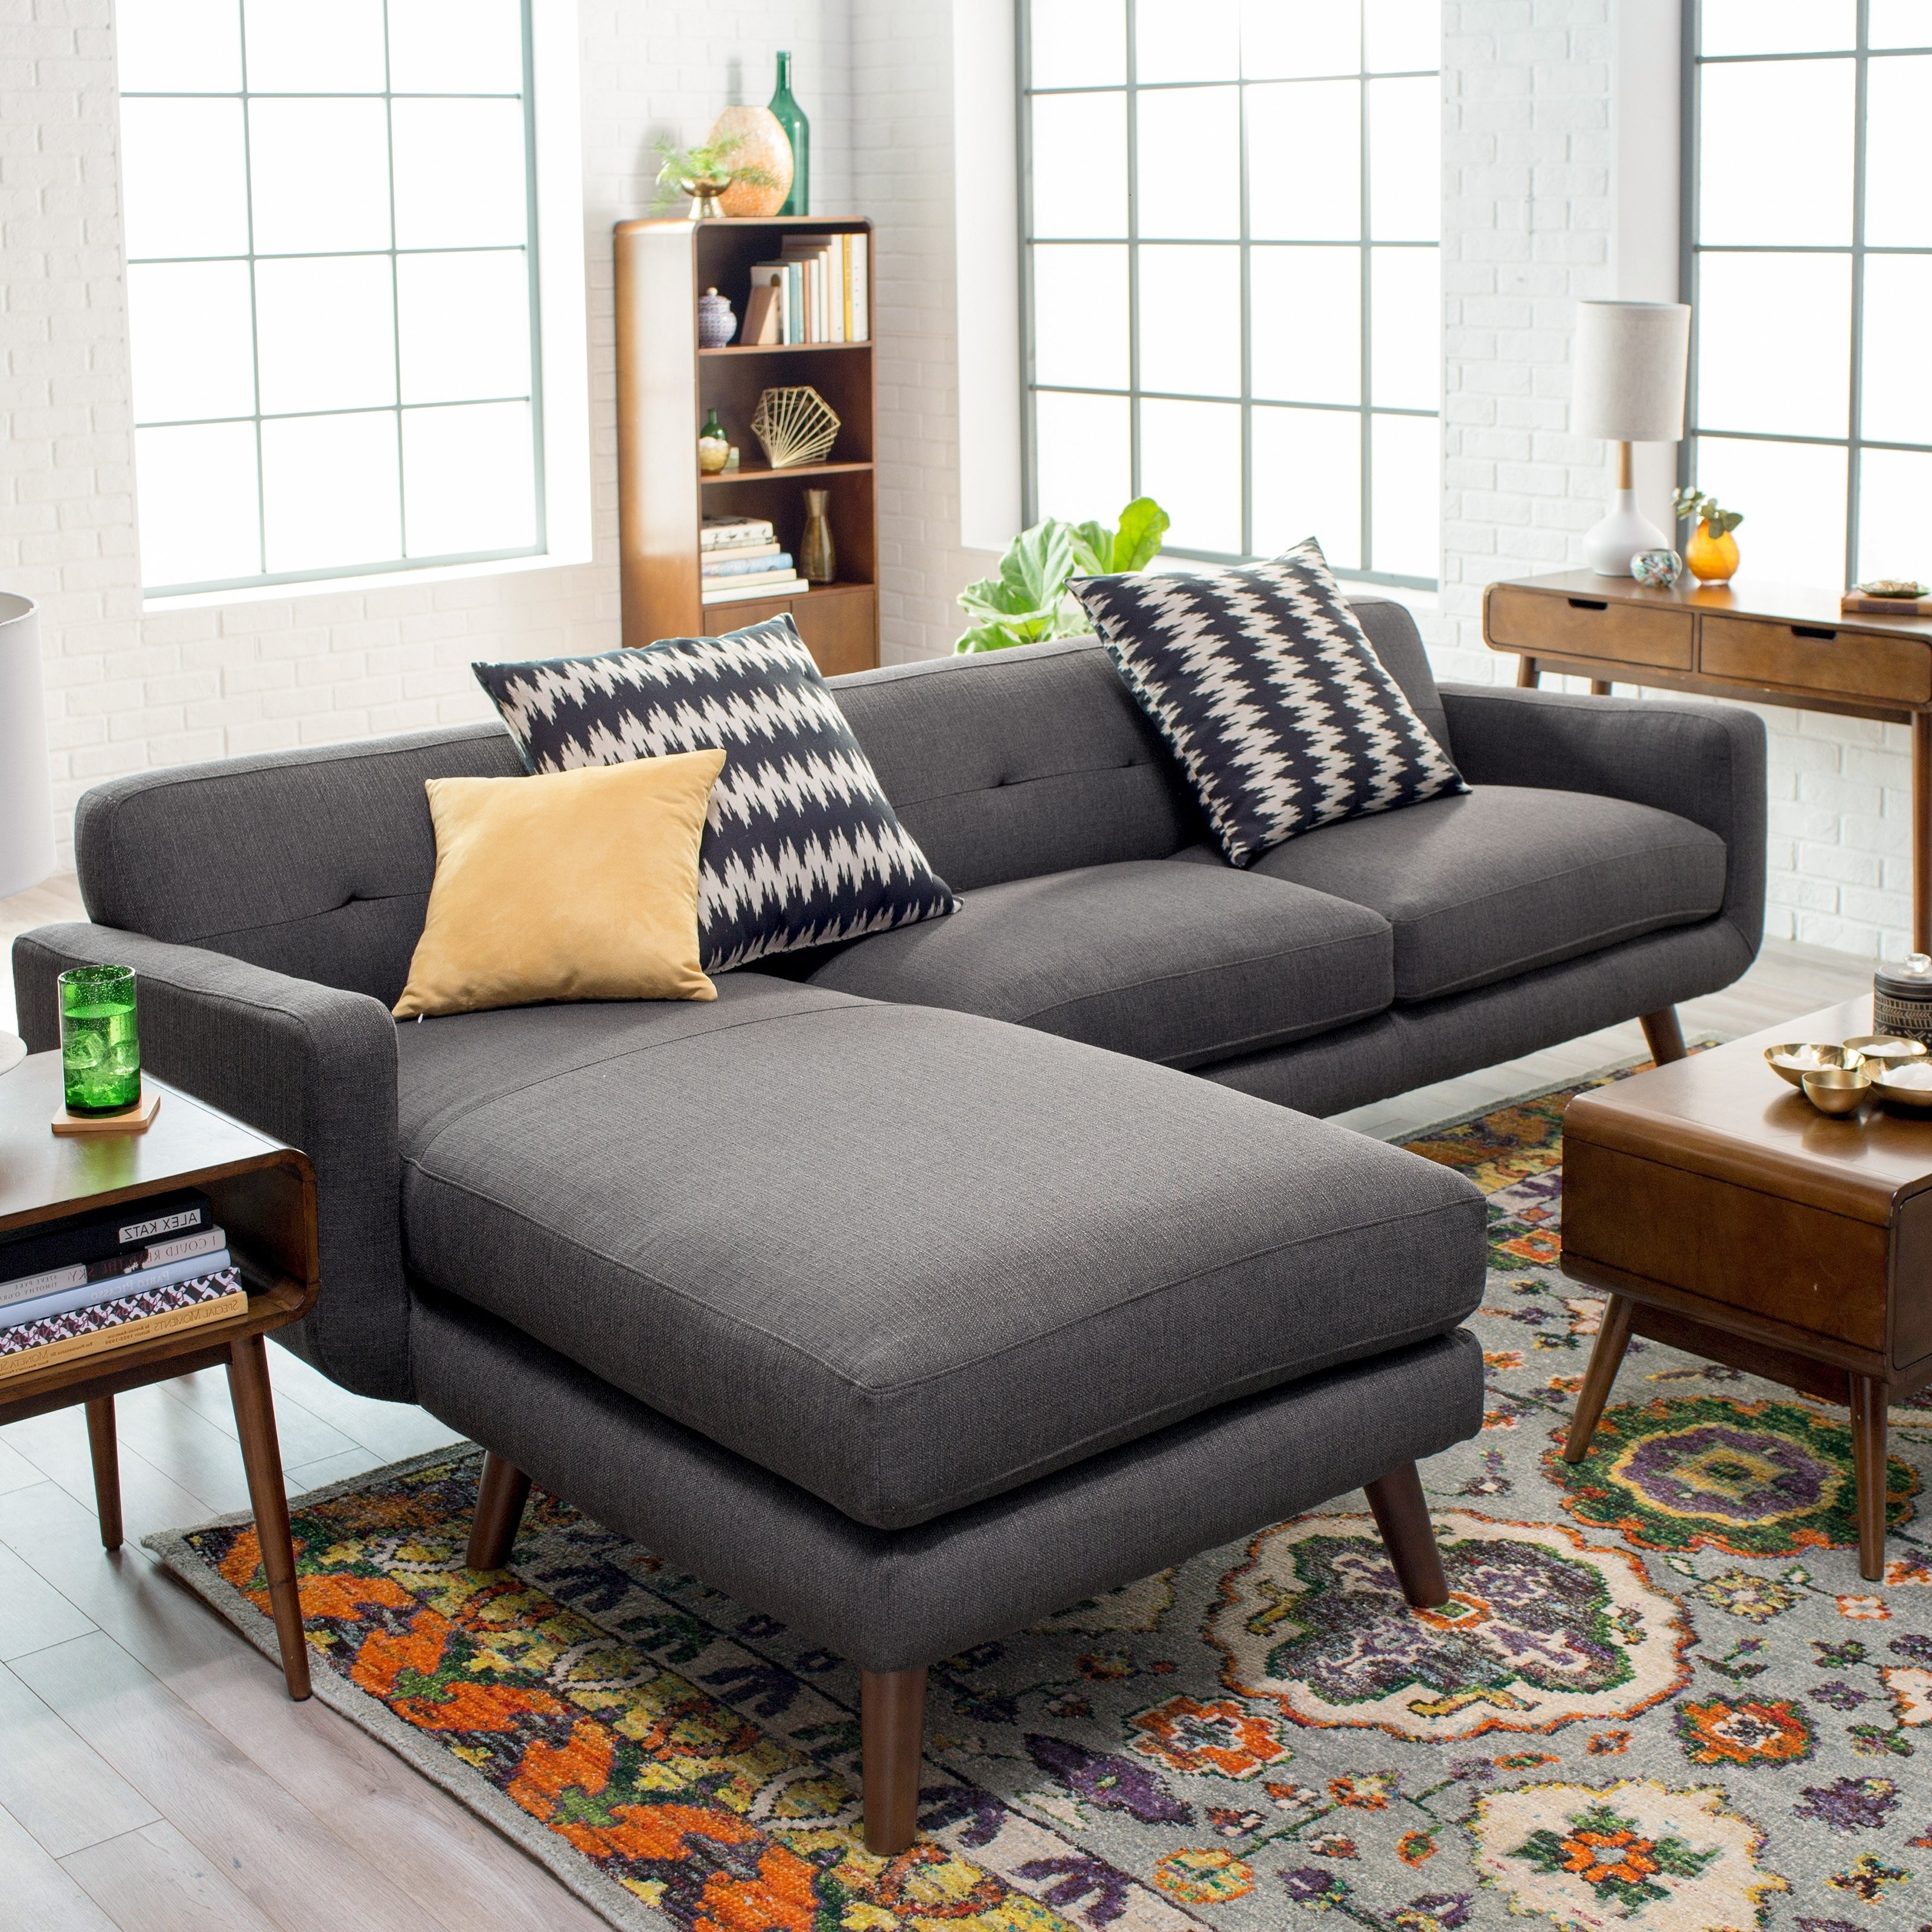 Farmers Furniture Sectional Sofas With Well Known Living Room Furniture : Sectional Sofas For Small Spaces Sectional (View 2 of 15)